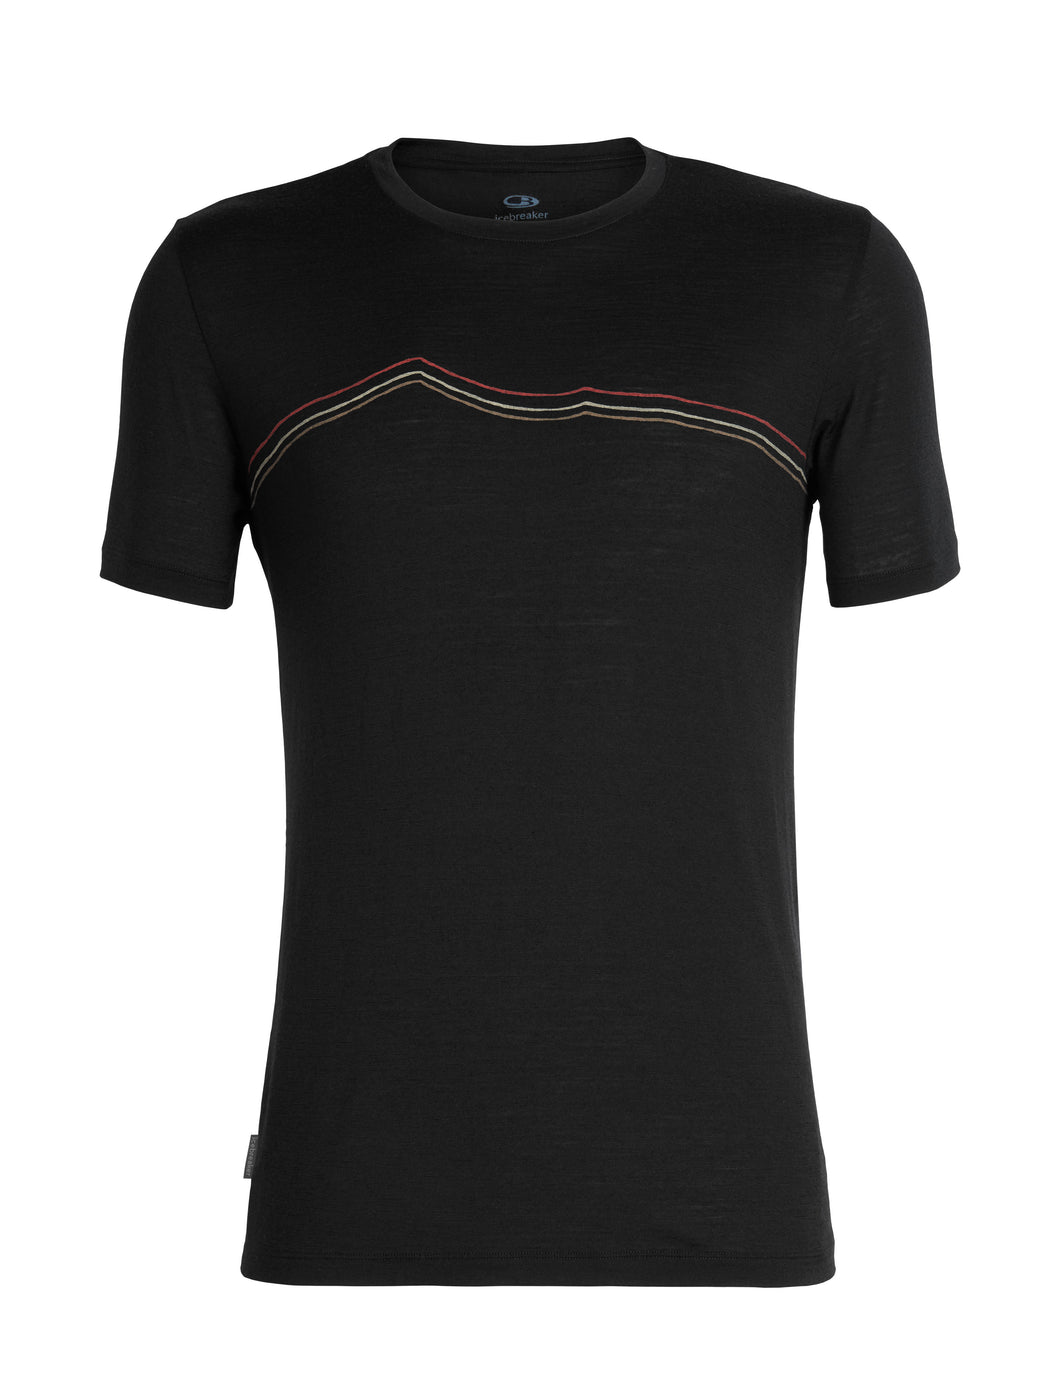 Icebreaker T-Shirt Men Merino Wool 150 Tech Lite - Rangitoto Triple - Outdoor Camping Trekking Hiking Everyday Short Sleeve